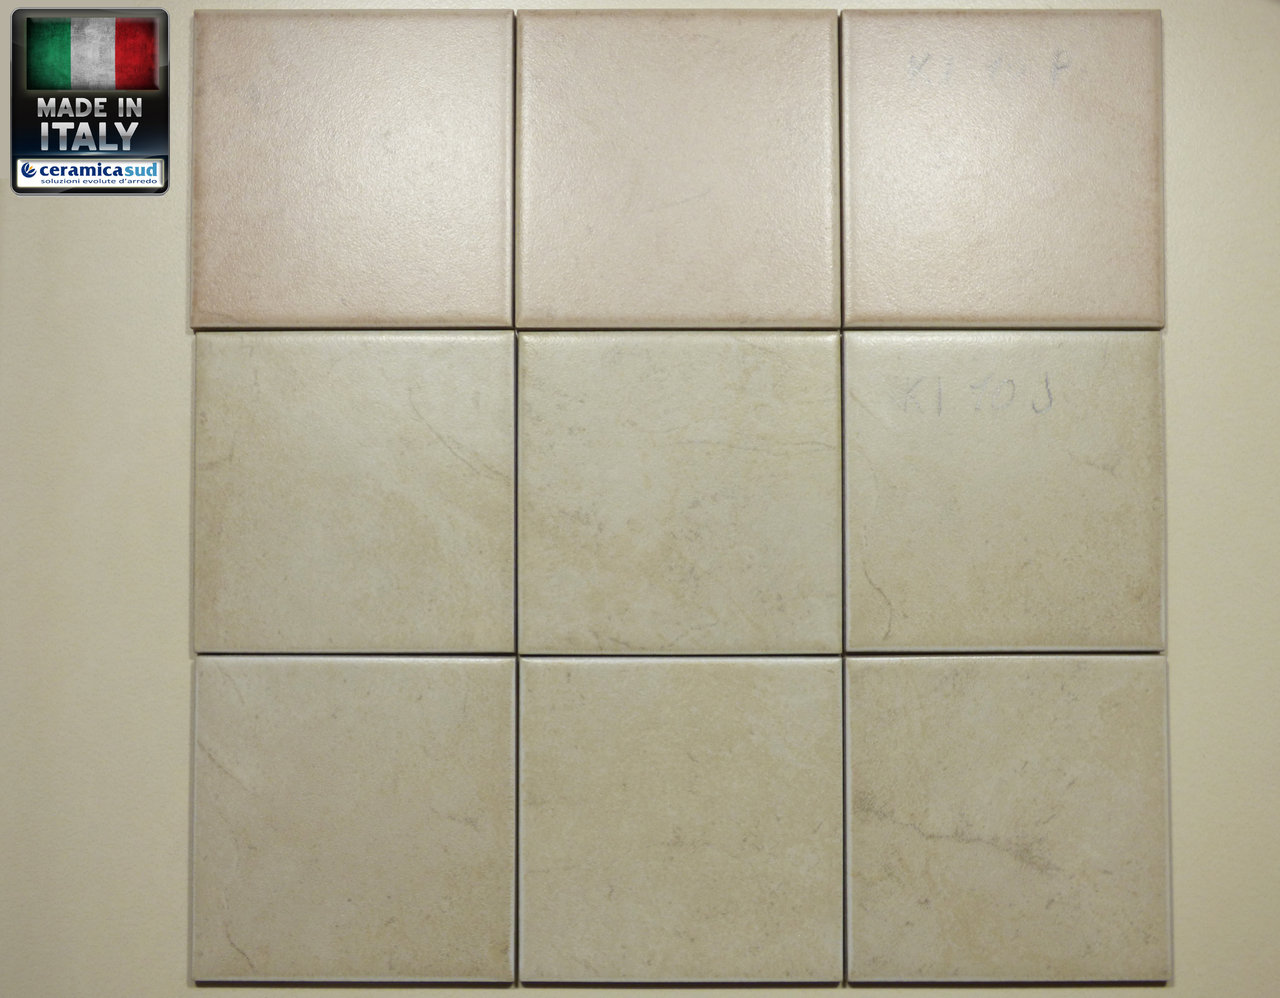 Pavimento 10 x 10 Gres Porcellanato Made in Italy - Top Quality Sottocosto